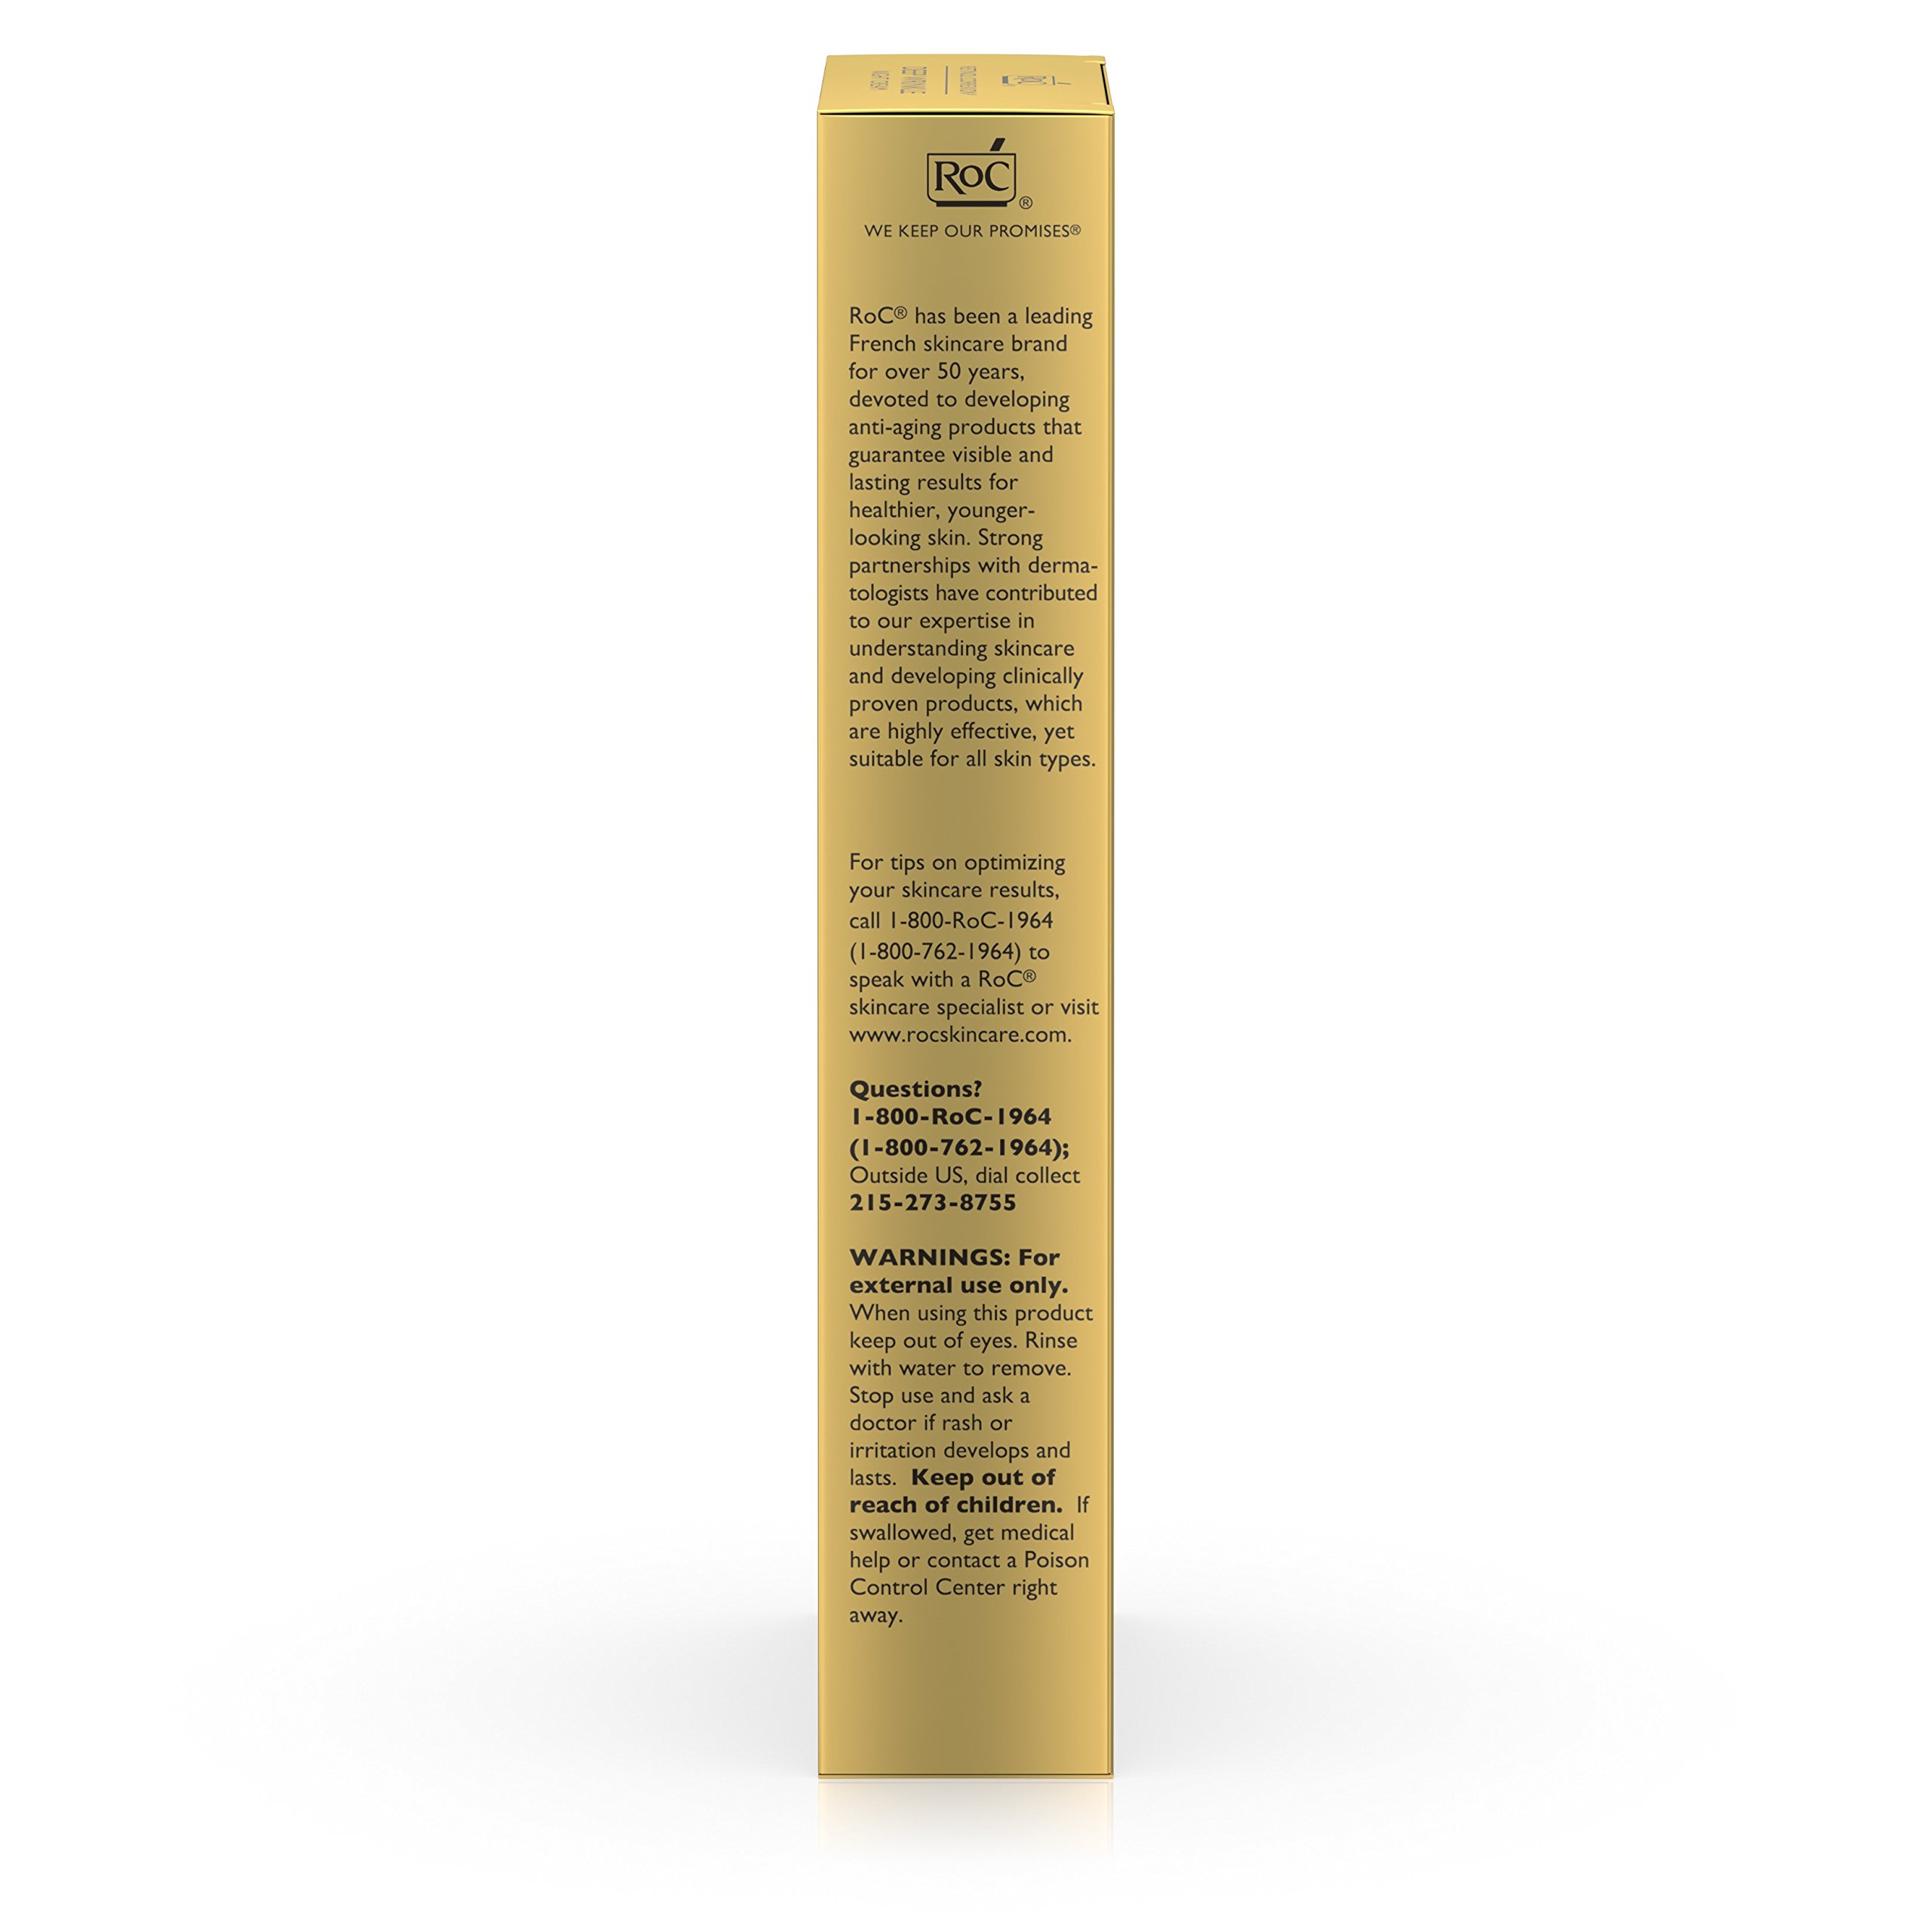 RoC Retinol Correxion Deep Wrinkle Anti-Aging Retinol Night Cream, Oil-Free and Non-Comedogenic, 1 oz by RoC (Image #10)